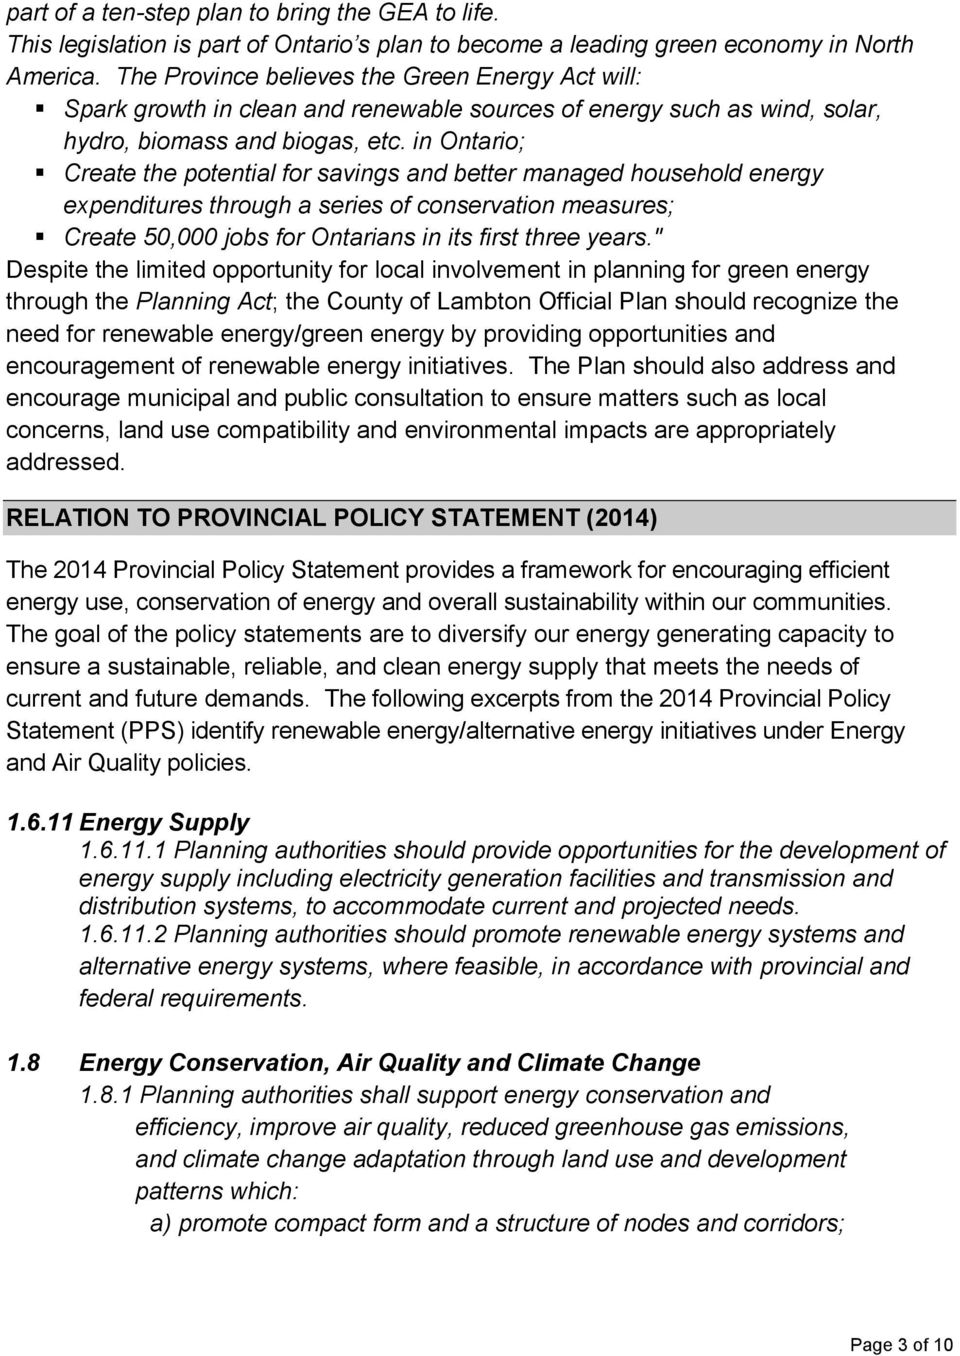 in Ontario; Create the potential for savings and better managed household energy expenditures through a series of conservation measures; Create 50,000 jobs for Ontarians in its first three years.